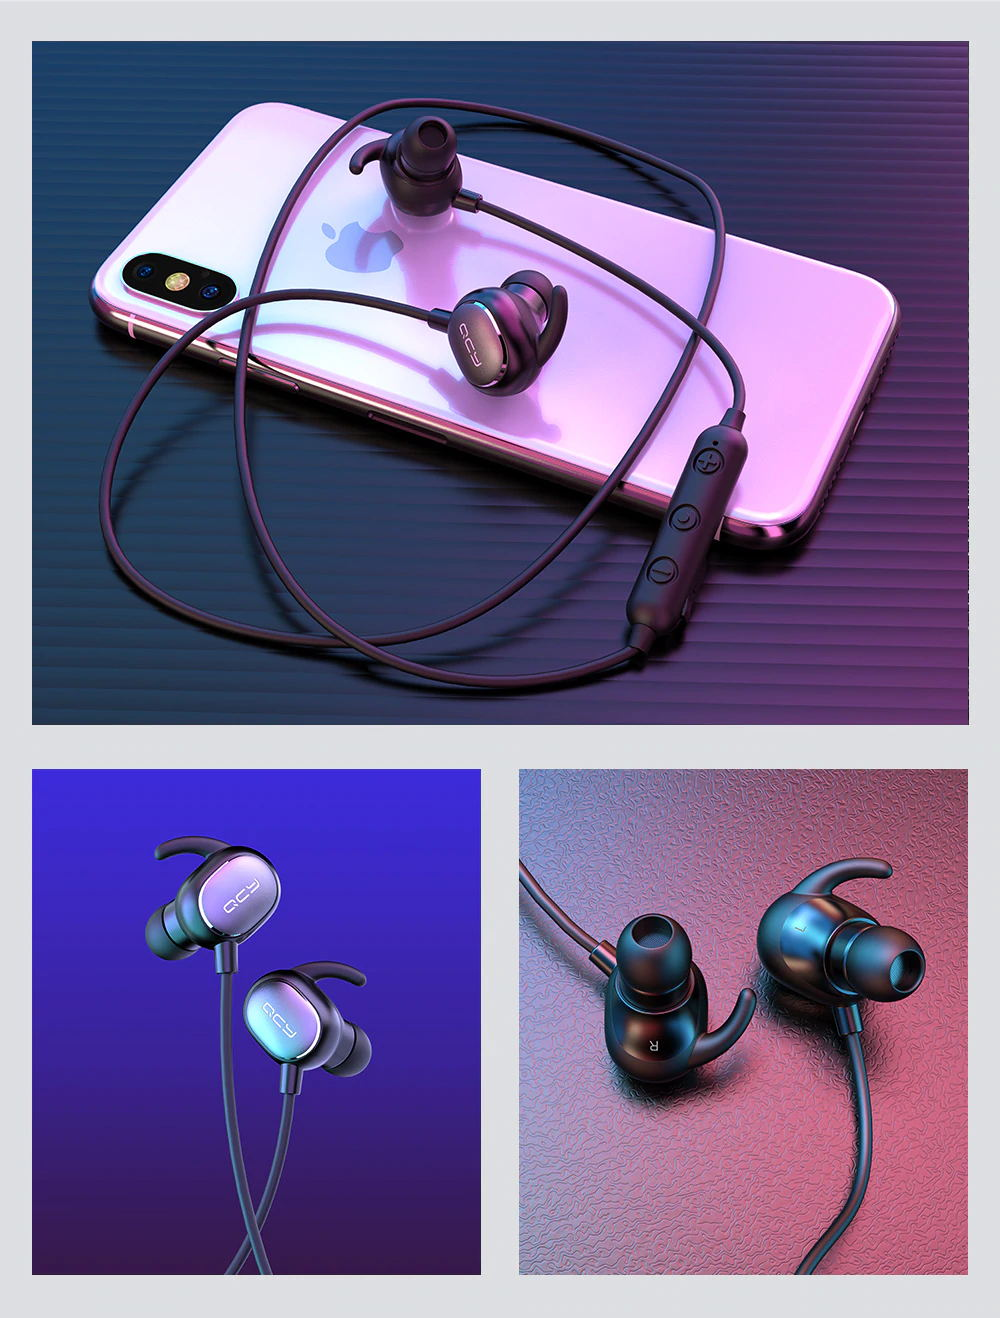 qcy qy19 wireless bluetooth earphone review